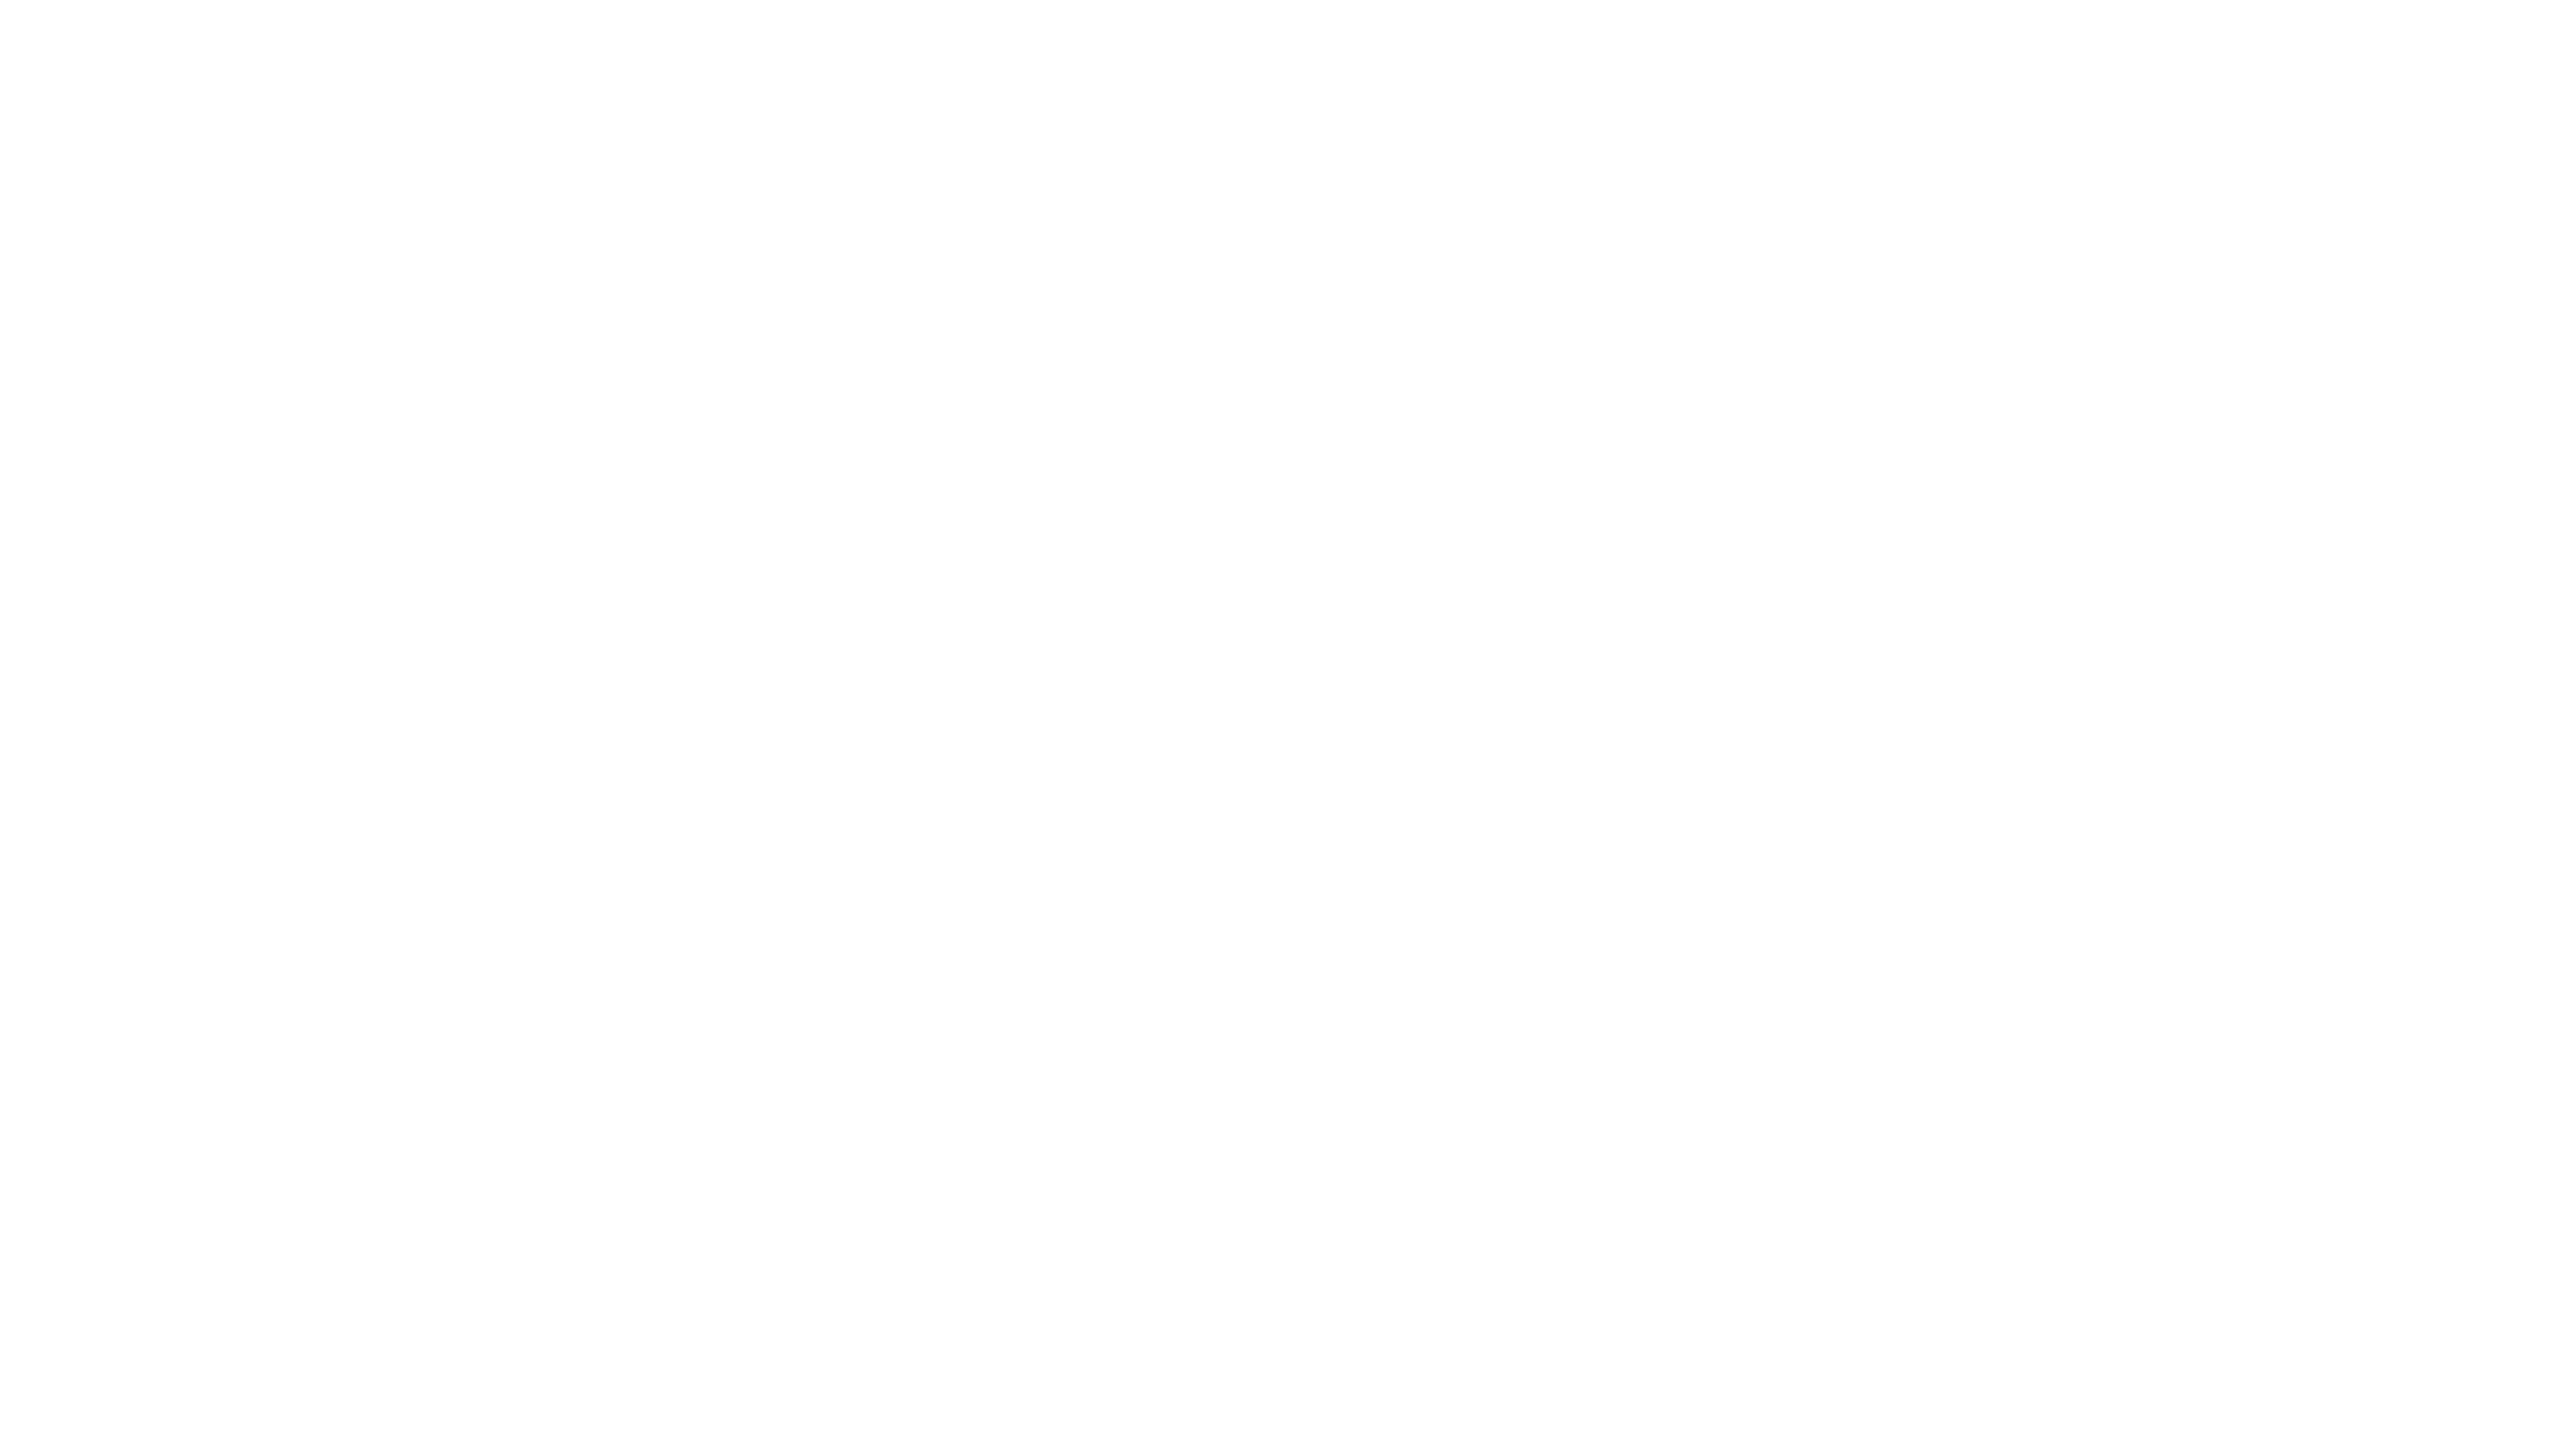 story table title